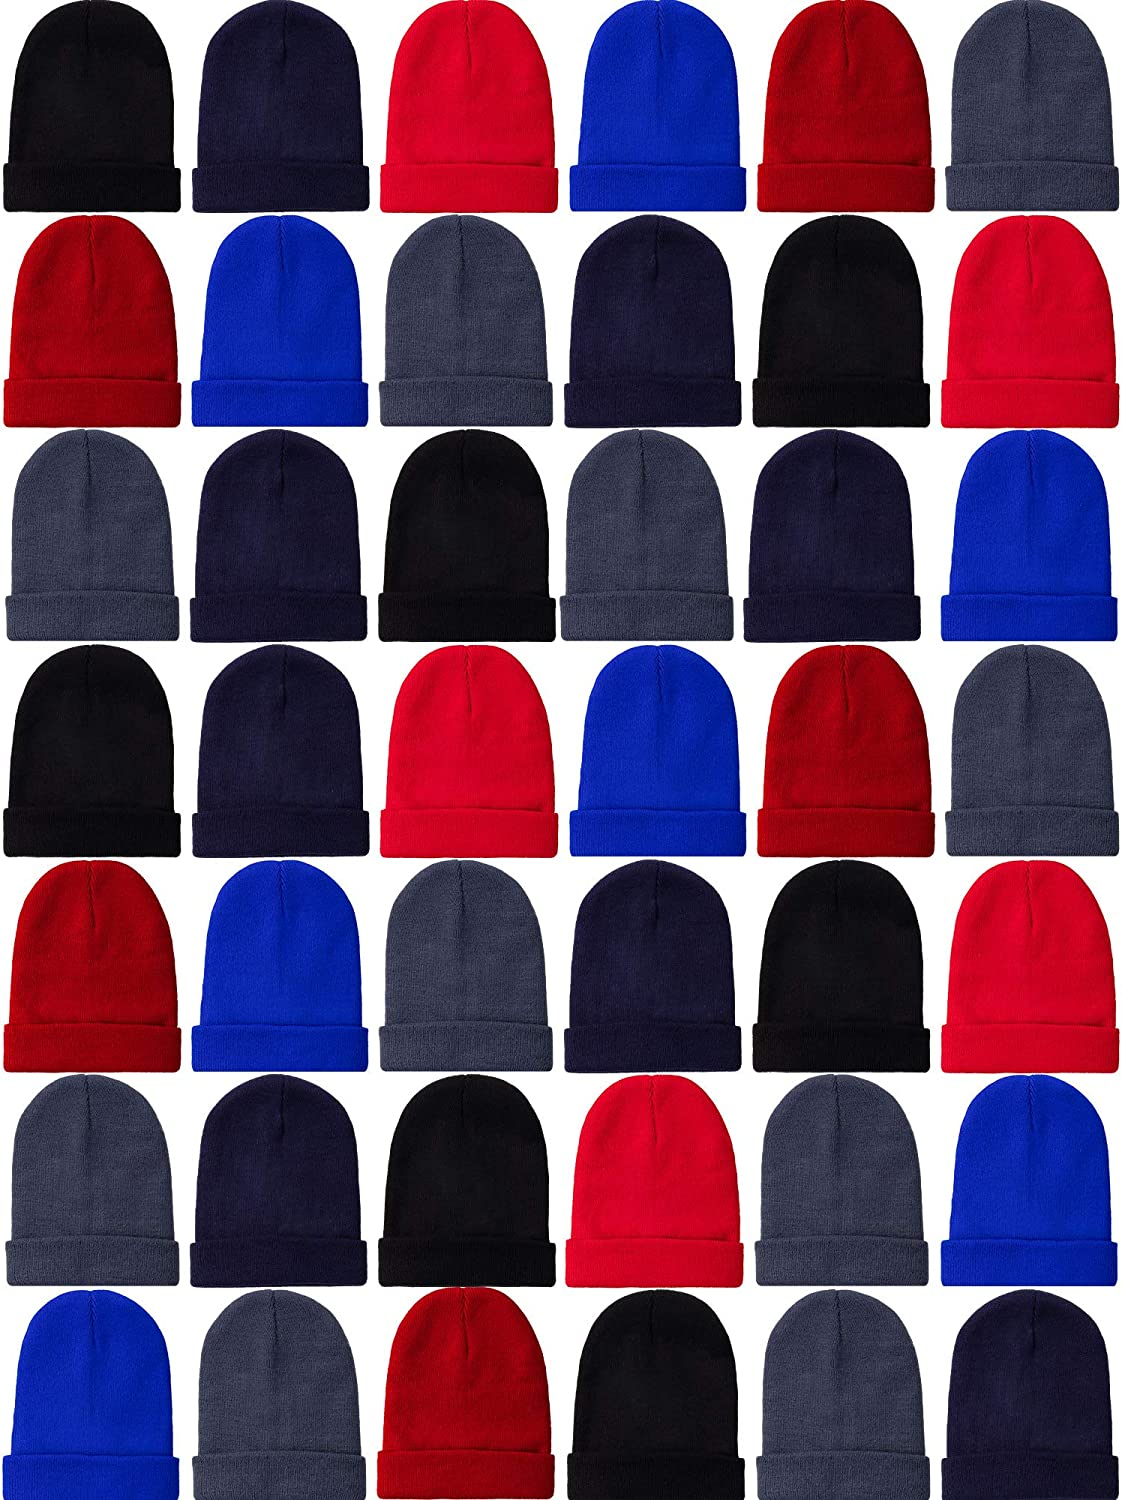 SATINIOR 60 Pack Kids Winter Beanies Knit Cold Weather Warm Cap Skull Hat Ears Covers (Black, Maroon, Navy Blue, Sapphire Blue, Red, Grey)